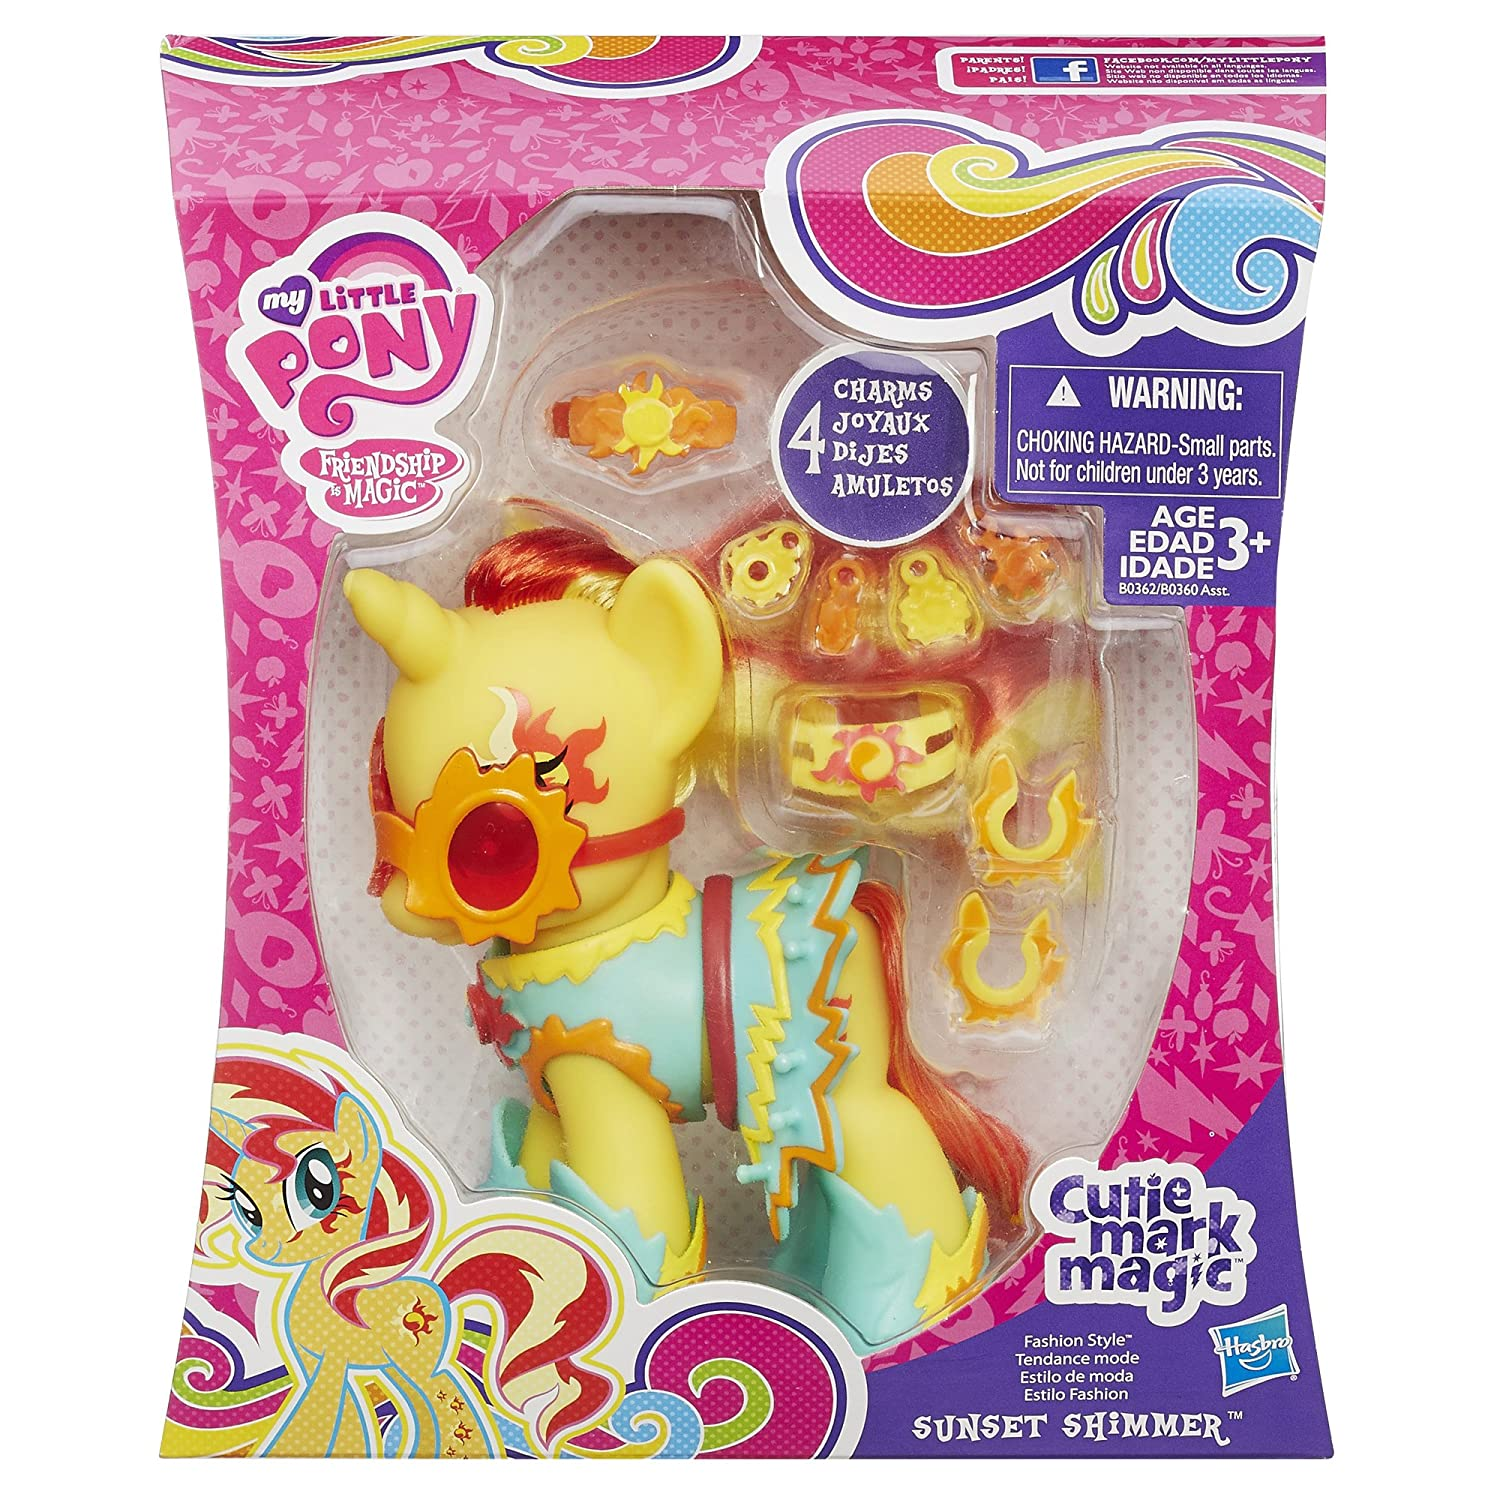 My Little Pony Princess Cutie Mark Magic Fashion Style Sunset Shimmer Figure B0362AS0